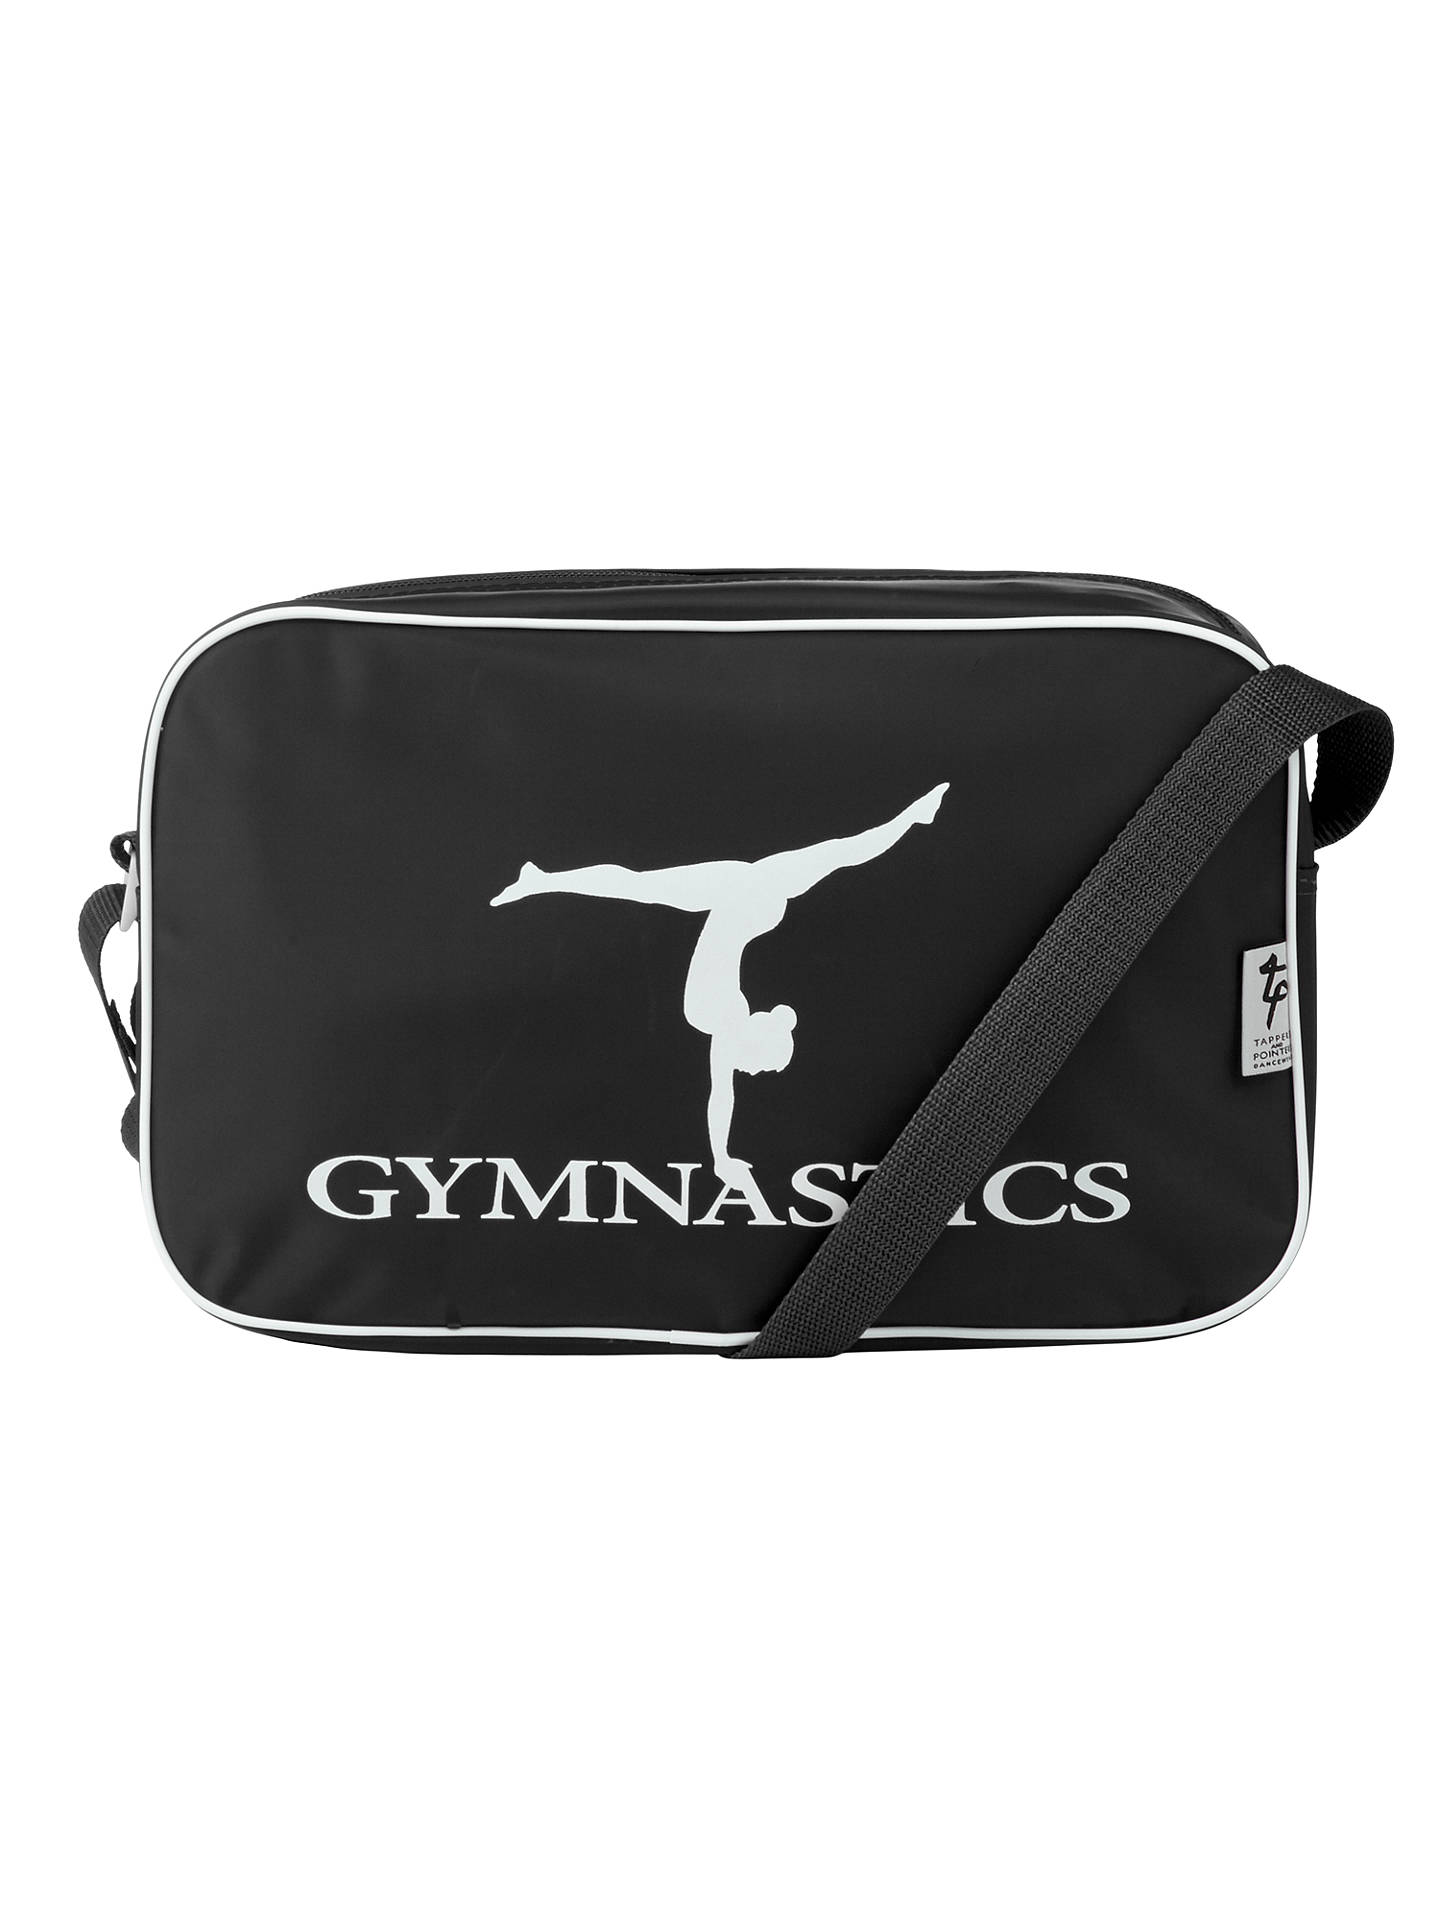 11e4e7061a Tappers and Pointers Gymnastics Shoulder Bag at John Lewis   Partners